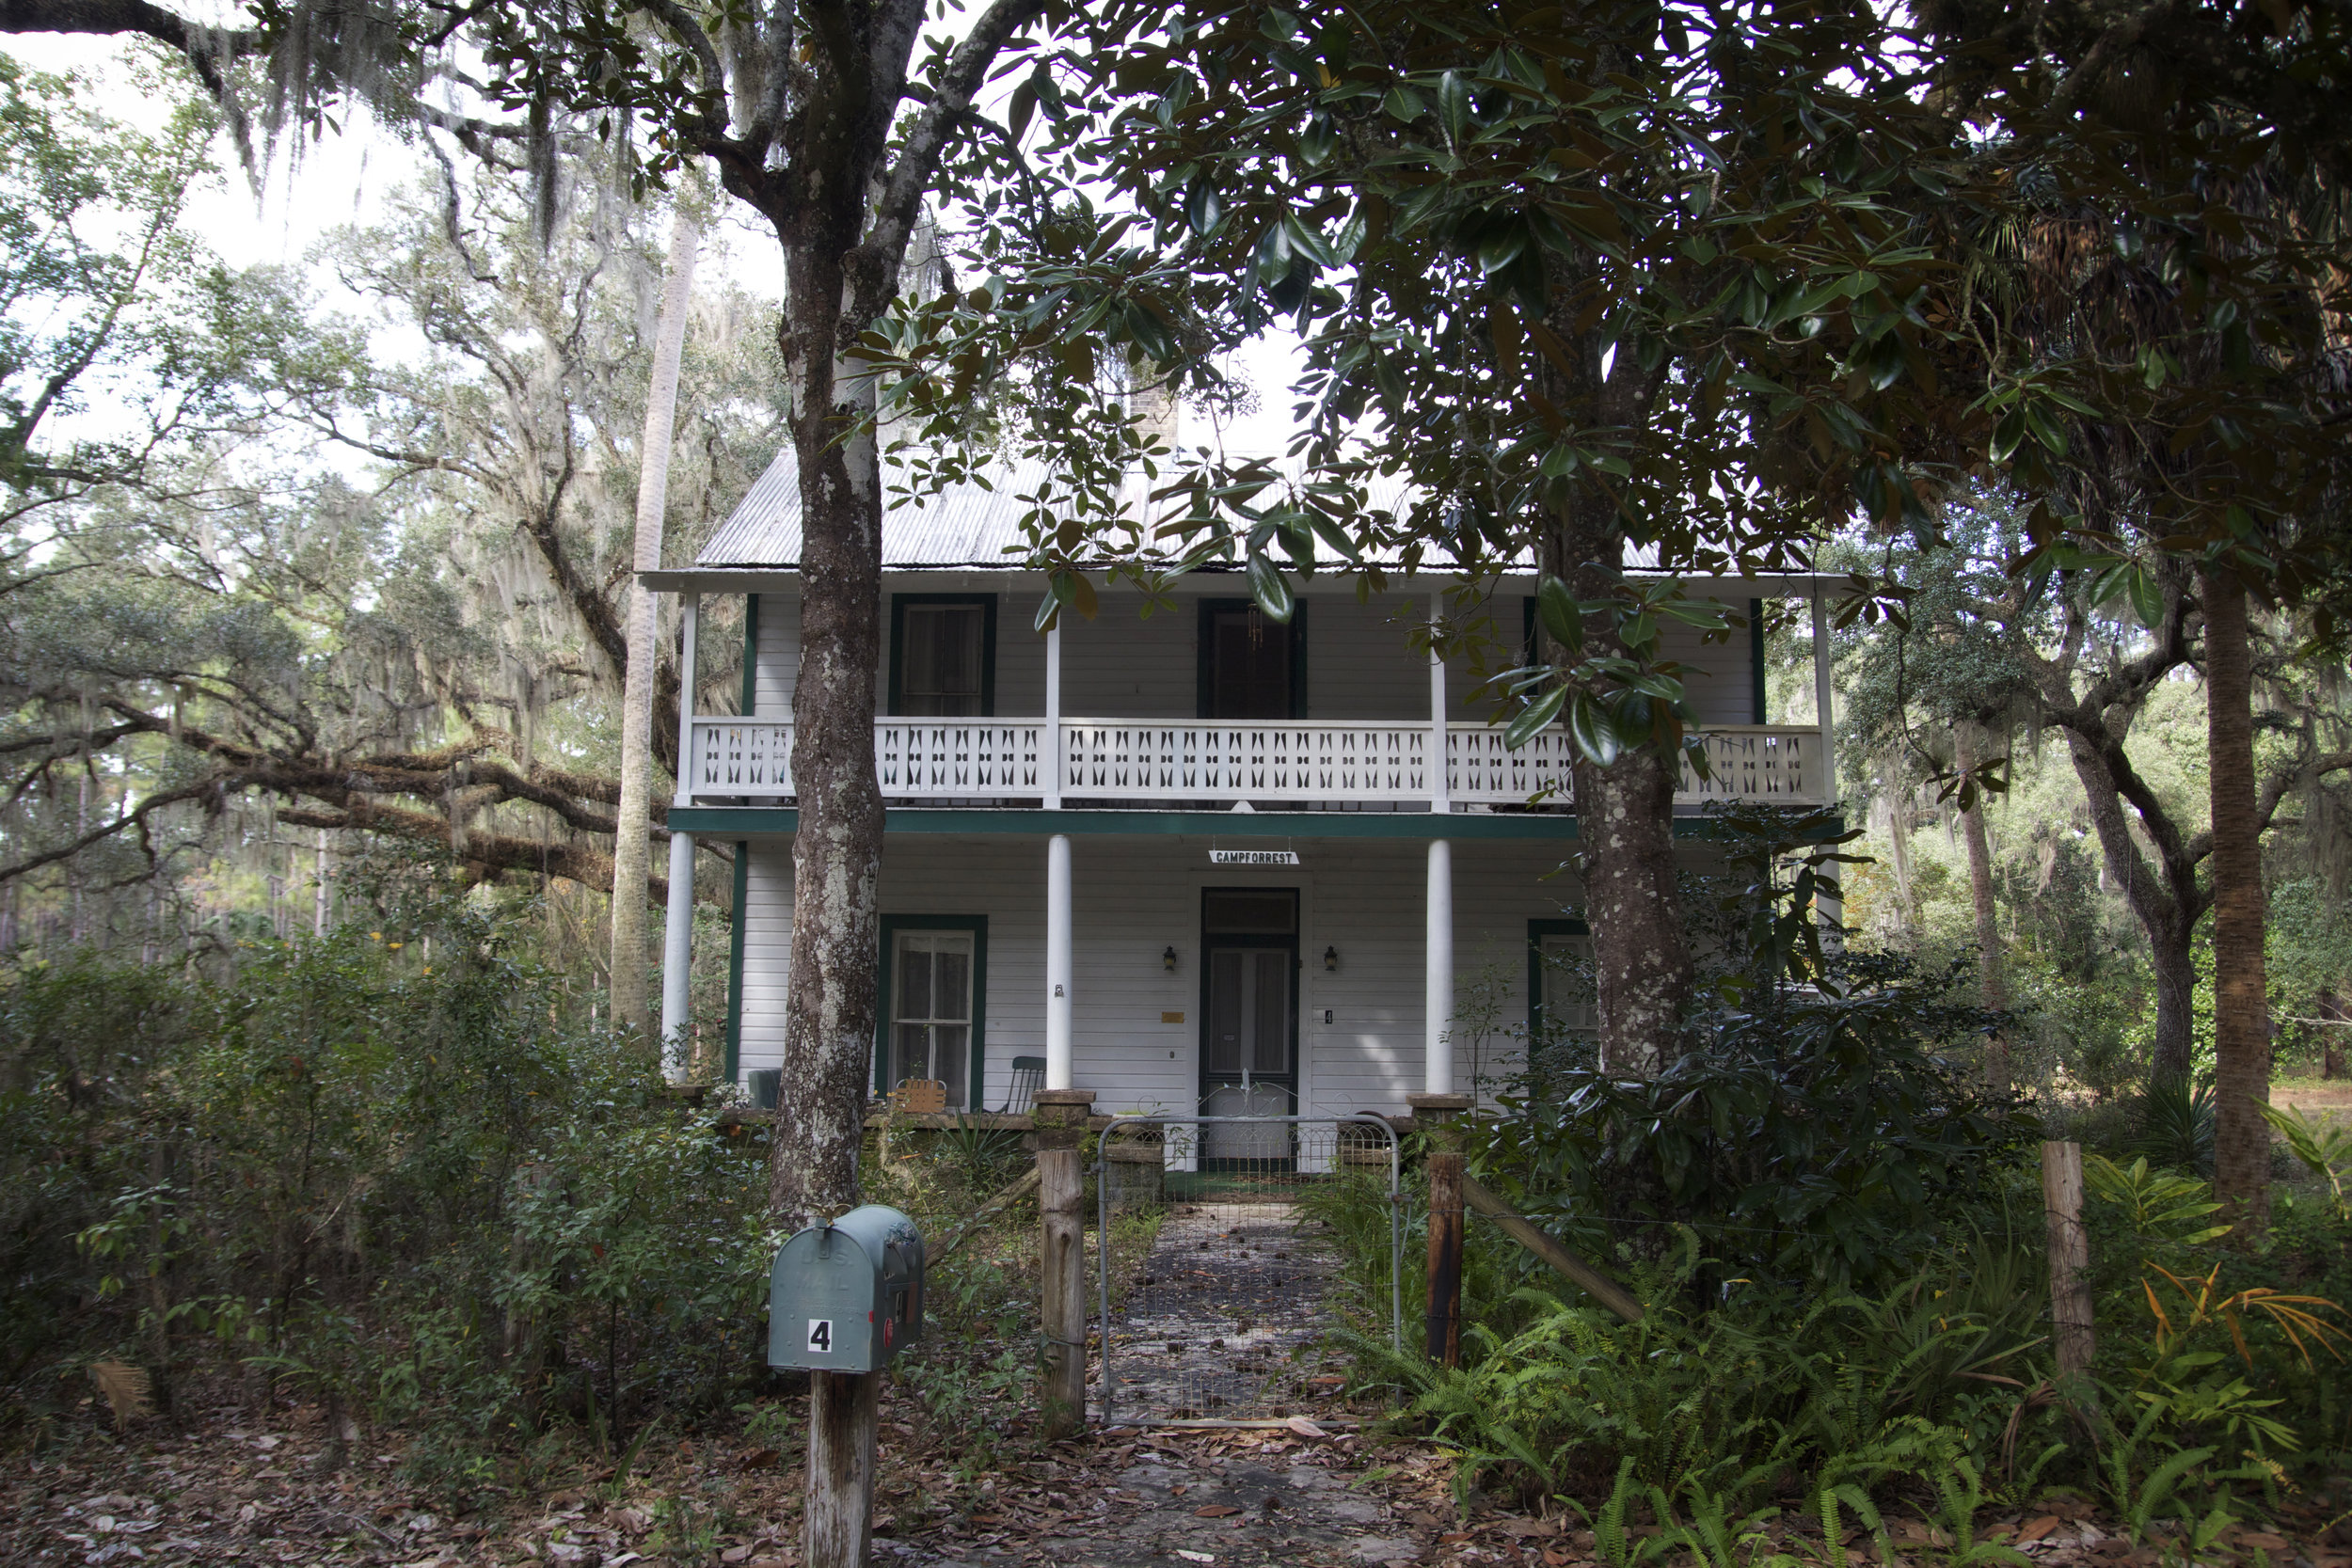 Boarding House - Built in 1885, this building sits just along the old stagecoach road and was the stopping point for weary passengers and their horses along the way. Marjorie Kinnan Rawlings used to stroll along this very path where I stood on her retreats to Kerr City. This home became Fletchers' (Lillian and George's son) home when he was the caretaker